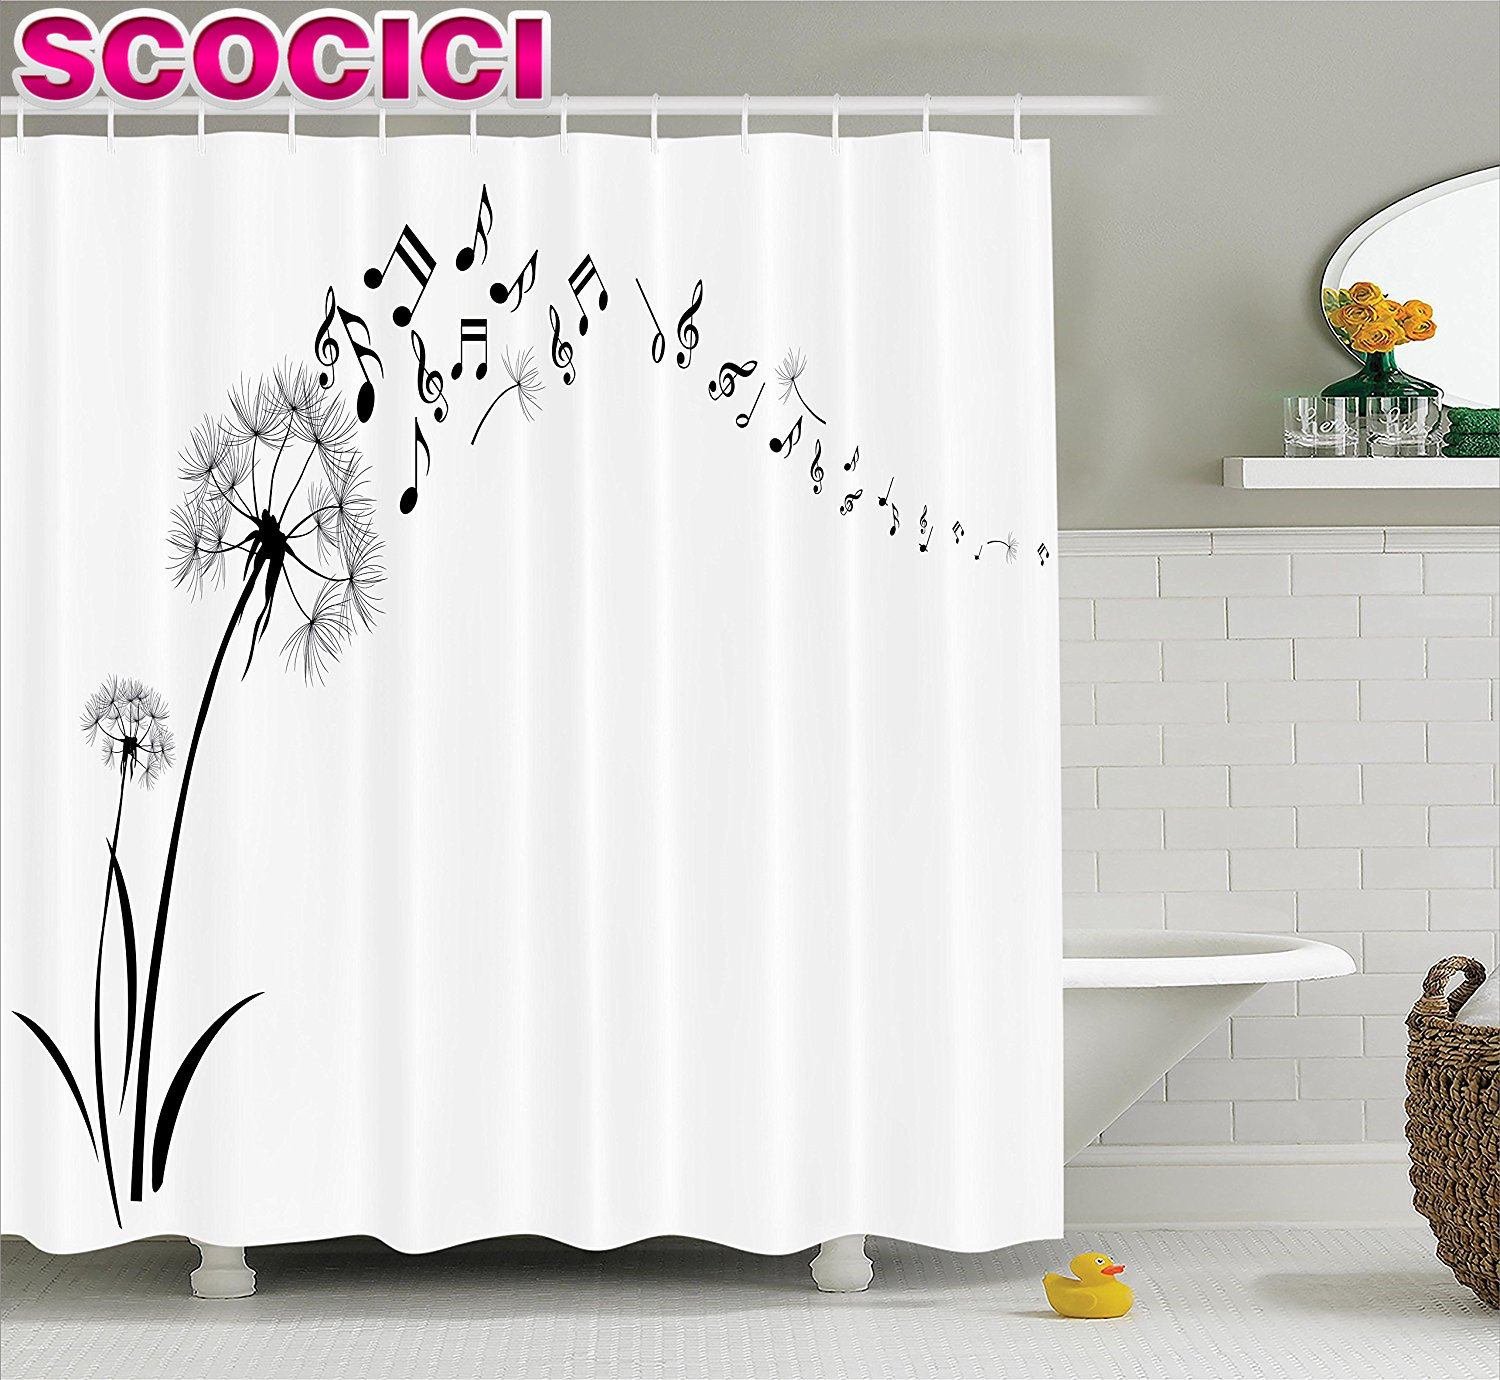 floral shower curtain set music decor dandelion with flying music notes summer garden art print bathroom accessories with hooks